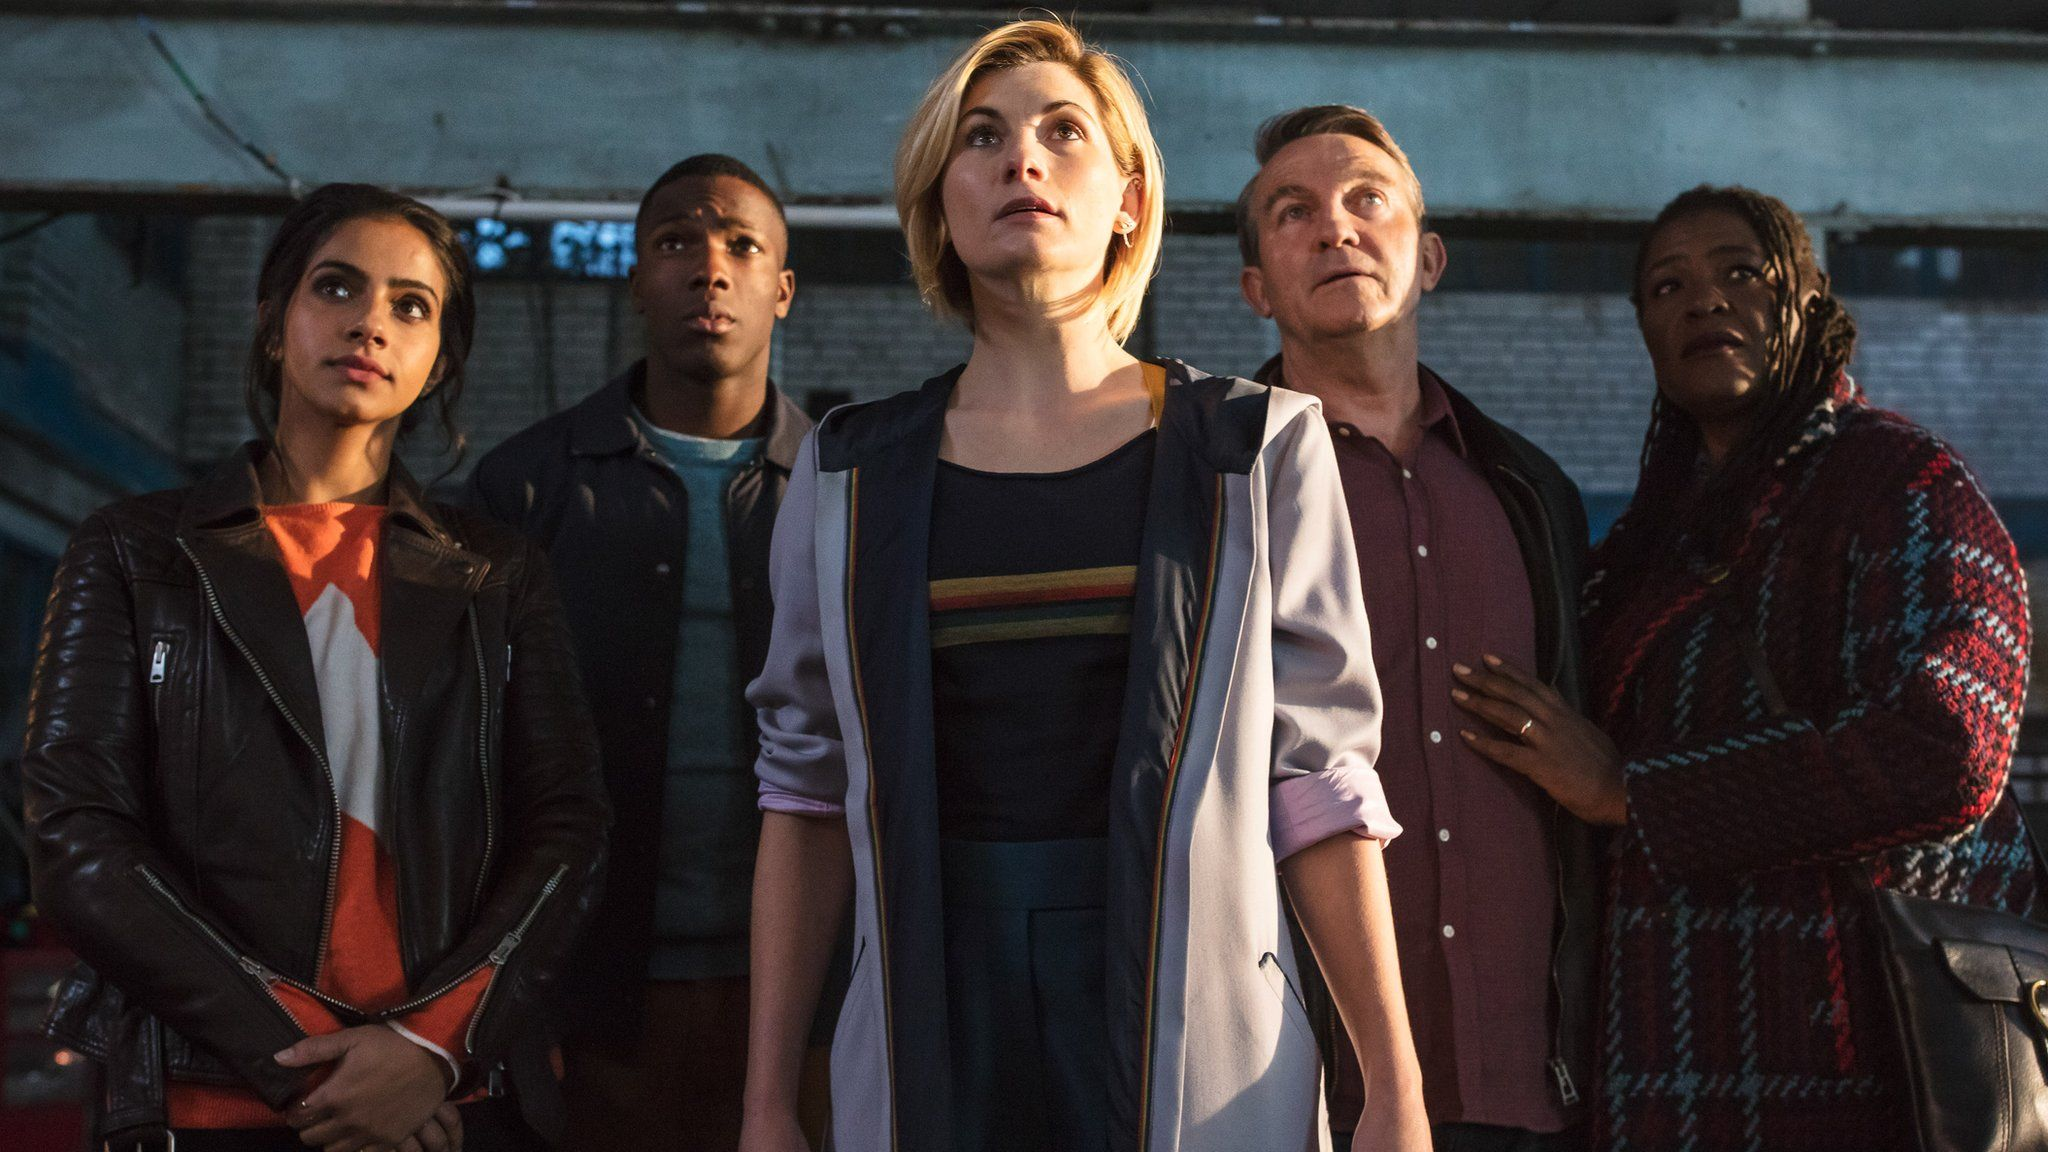 Doctor Who Jodie Whittaker A Hit With Fans After First Episode